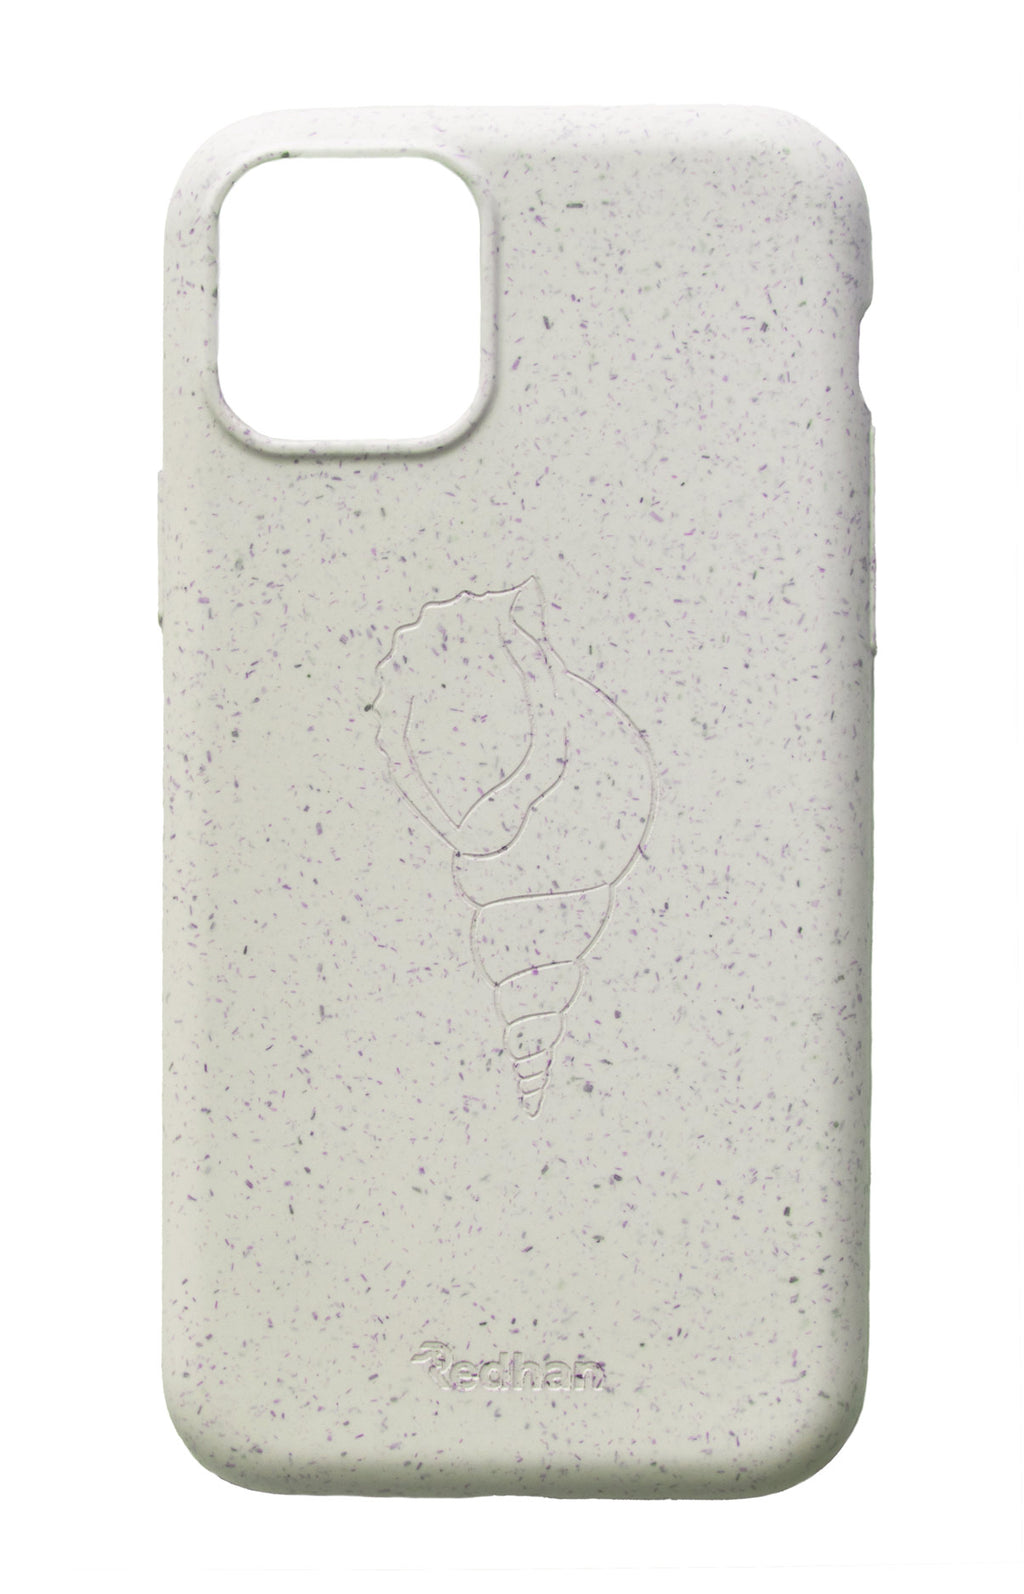 Eco Friendly iPhone 11 Pro Max Phone Case - 'Sangu' or Triton Shell in Pearl White